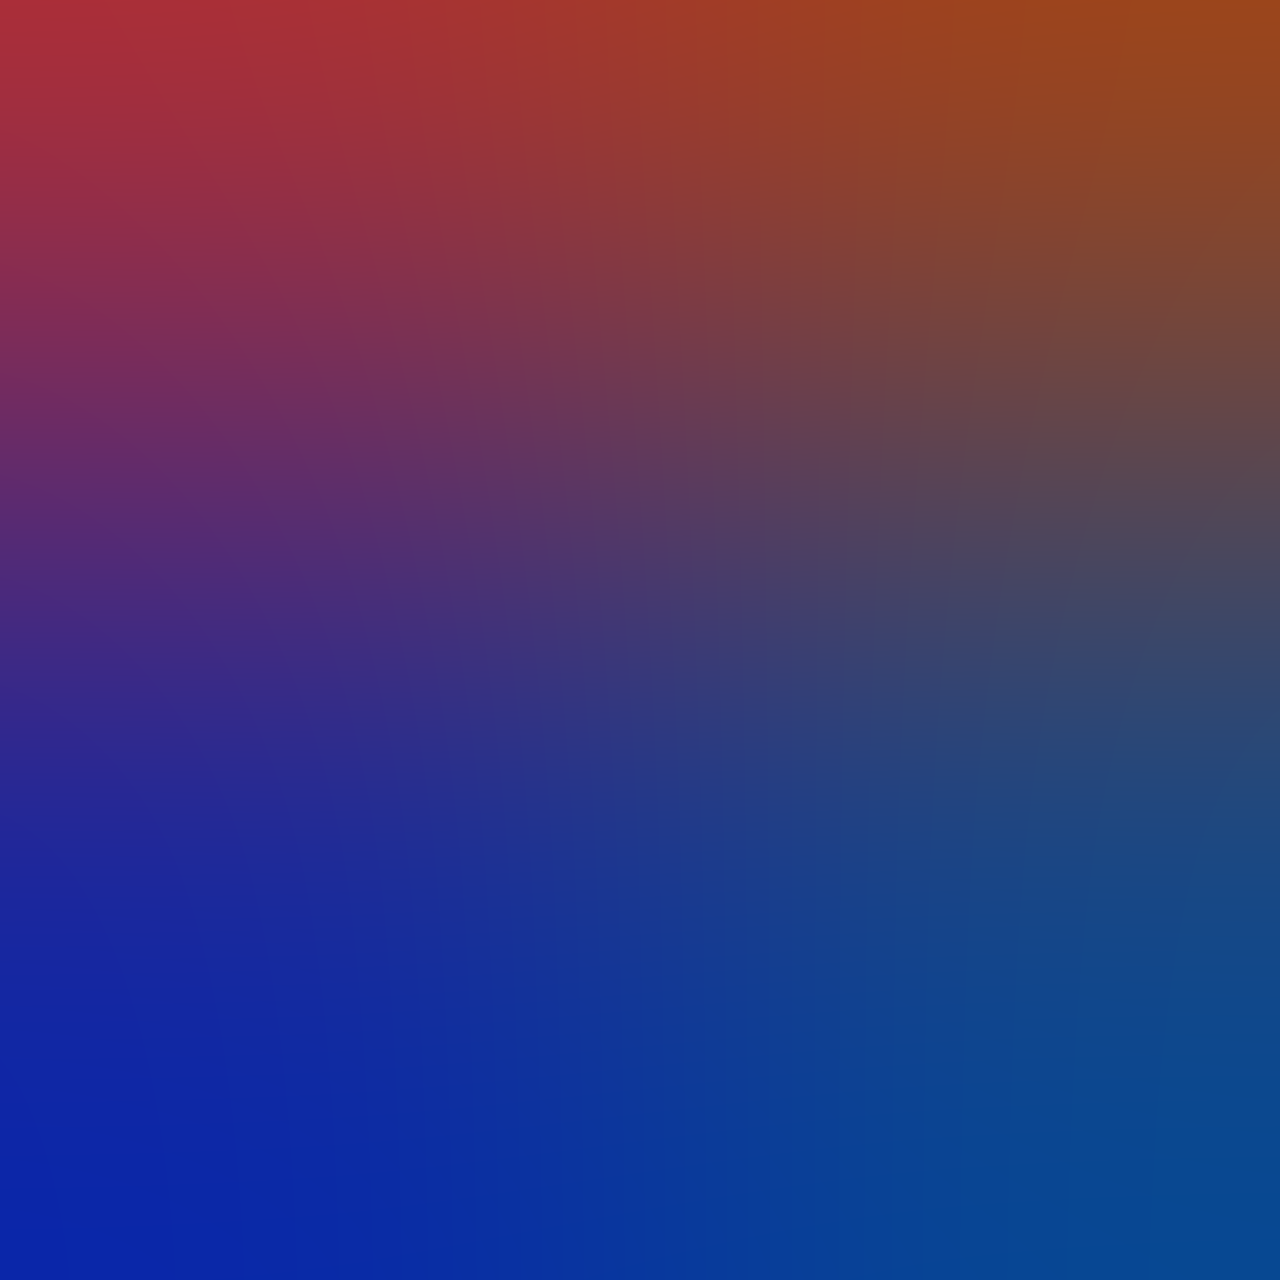 Red And Blue Fade Background